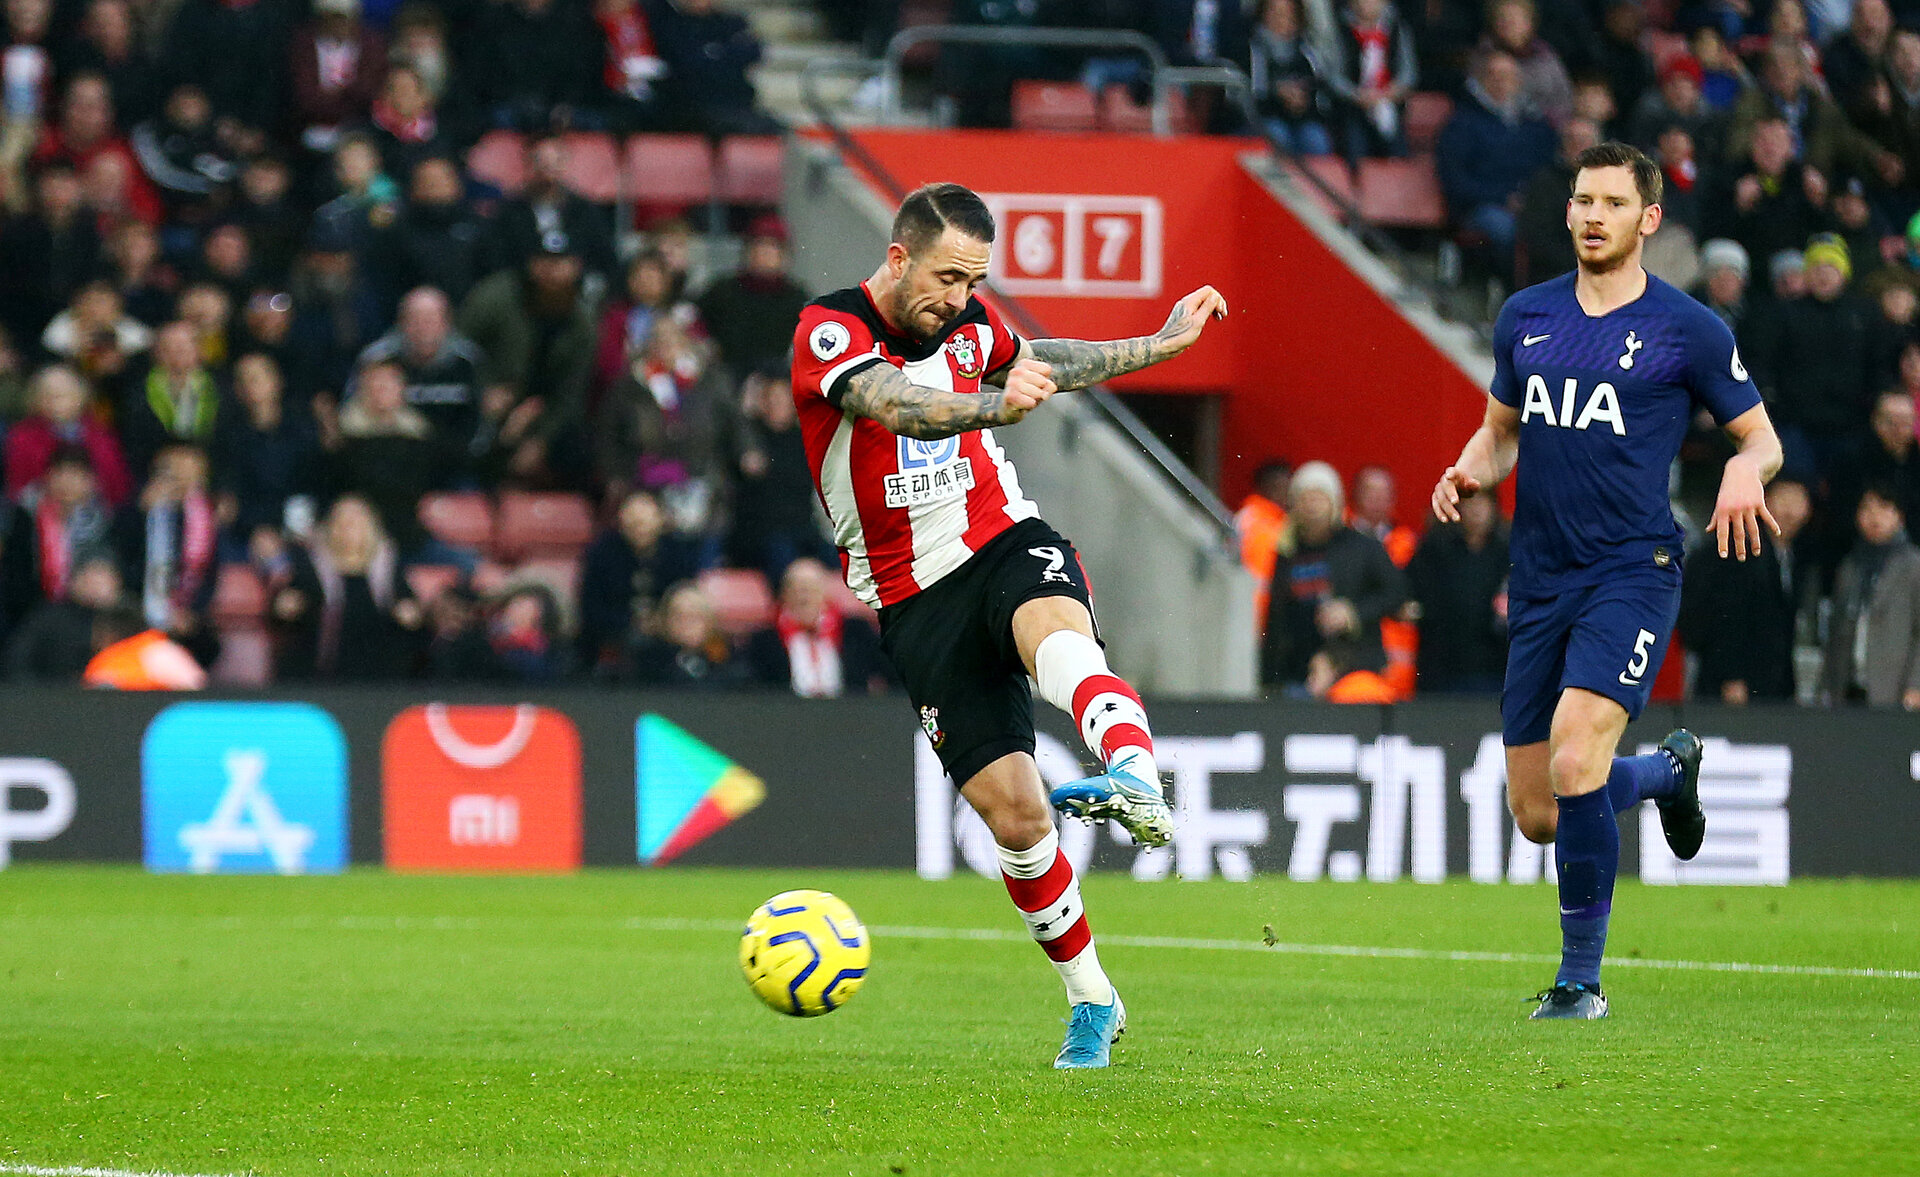 SOUTHAMPTON, ENGLAND - JANUARY 01: Danny Ings of Southampton opens the scoring during the Premier League match between Southampton FC and Tottenham Hotspur at St Mary's Stadium on January 01, 2020 in Southampton, United Kingdom. (Photo by Matt Watson/Southampton FC via Getty Images)